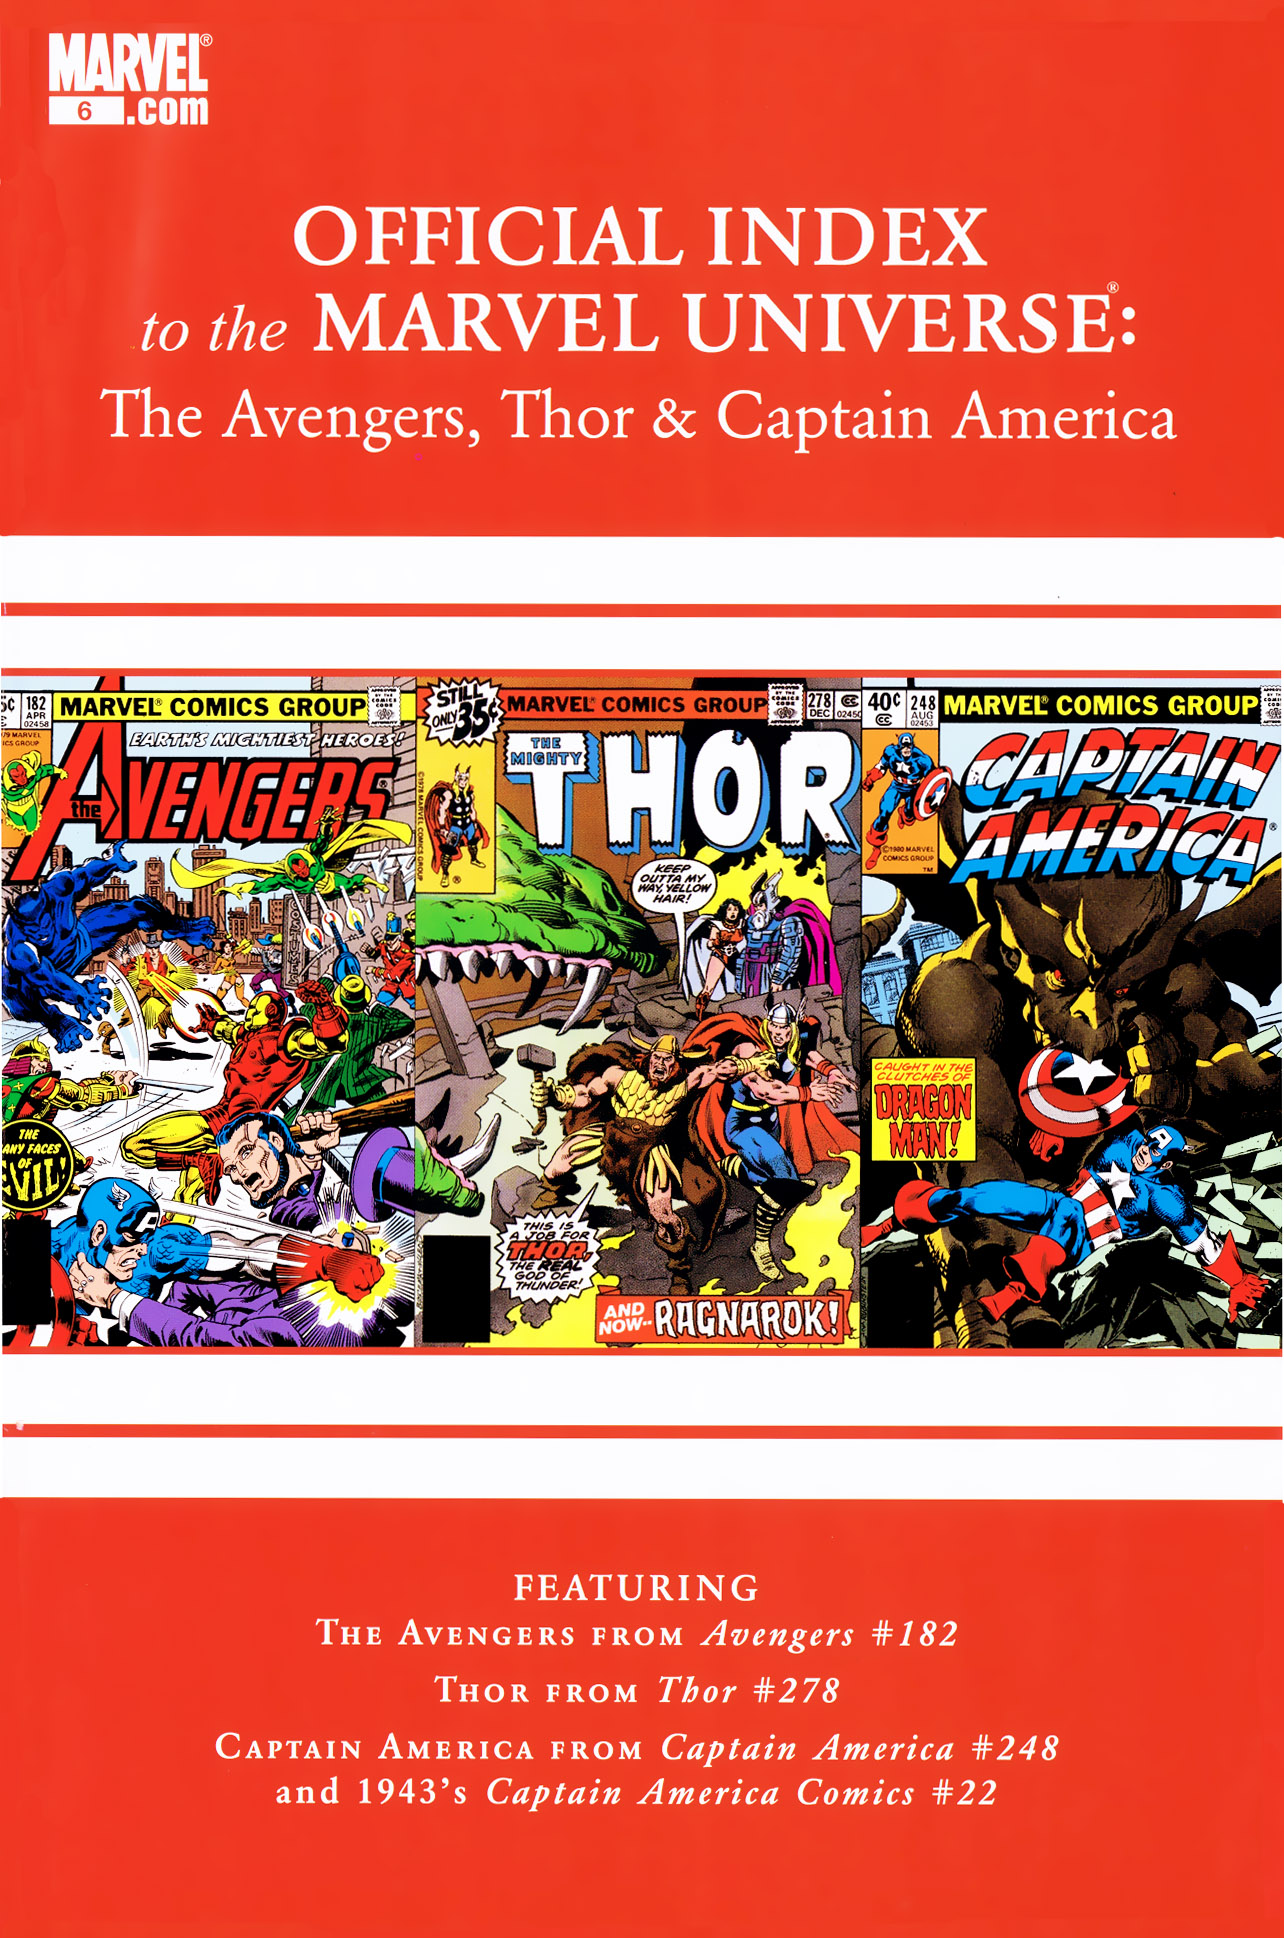 Avengers Thor & Captain America – Official Index to the Marvel Universe #6